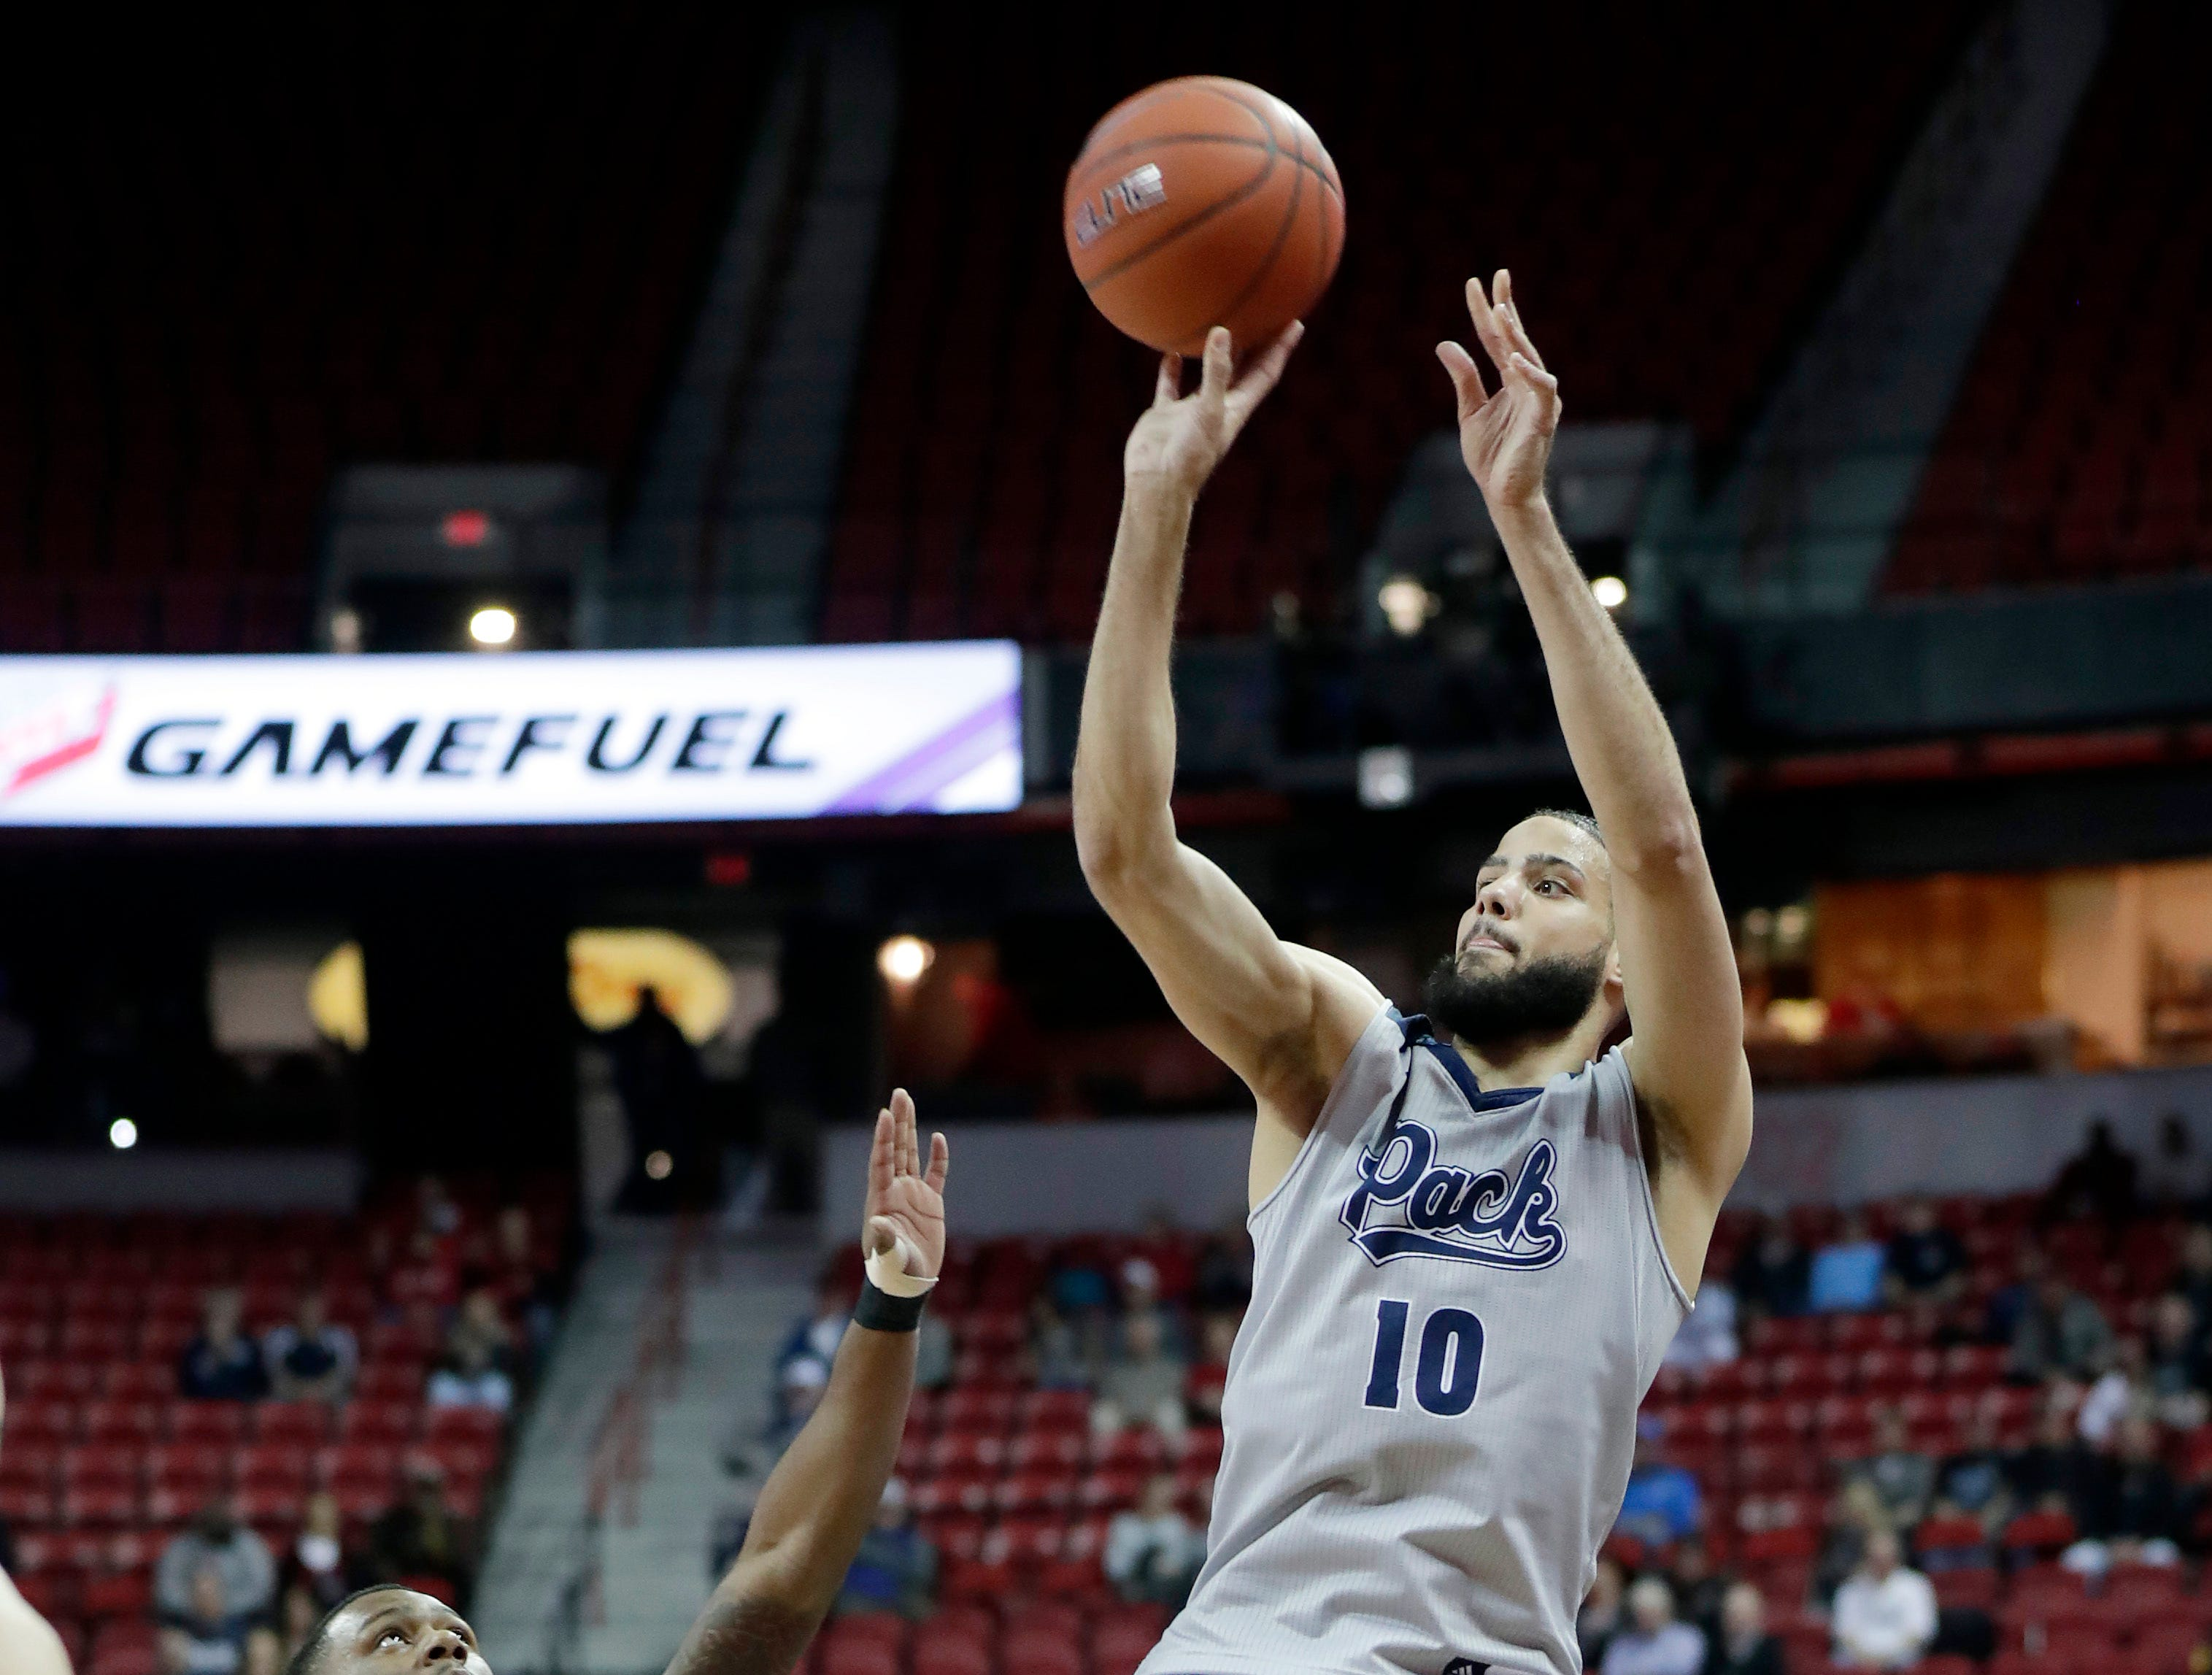 Nevada's Caleb Martin (10) shoots as Boise State's Marcus Dickinson defends during the first half of an NCAA college basketball game in the Mountain West Conference men's tournament Thursday, March 14, 2019, in Las Vegas. (AP Photo/Isaac Brekken)